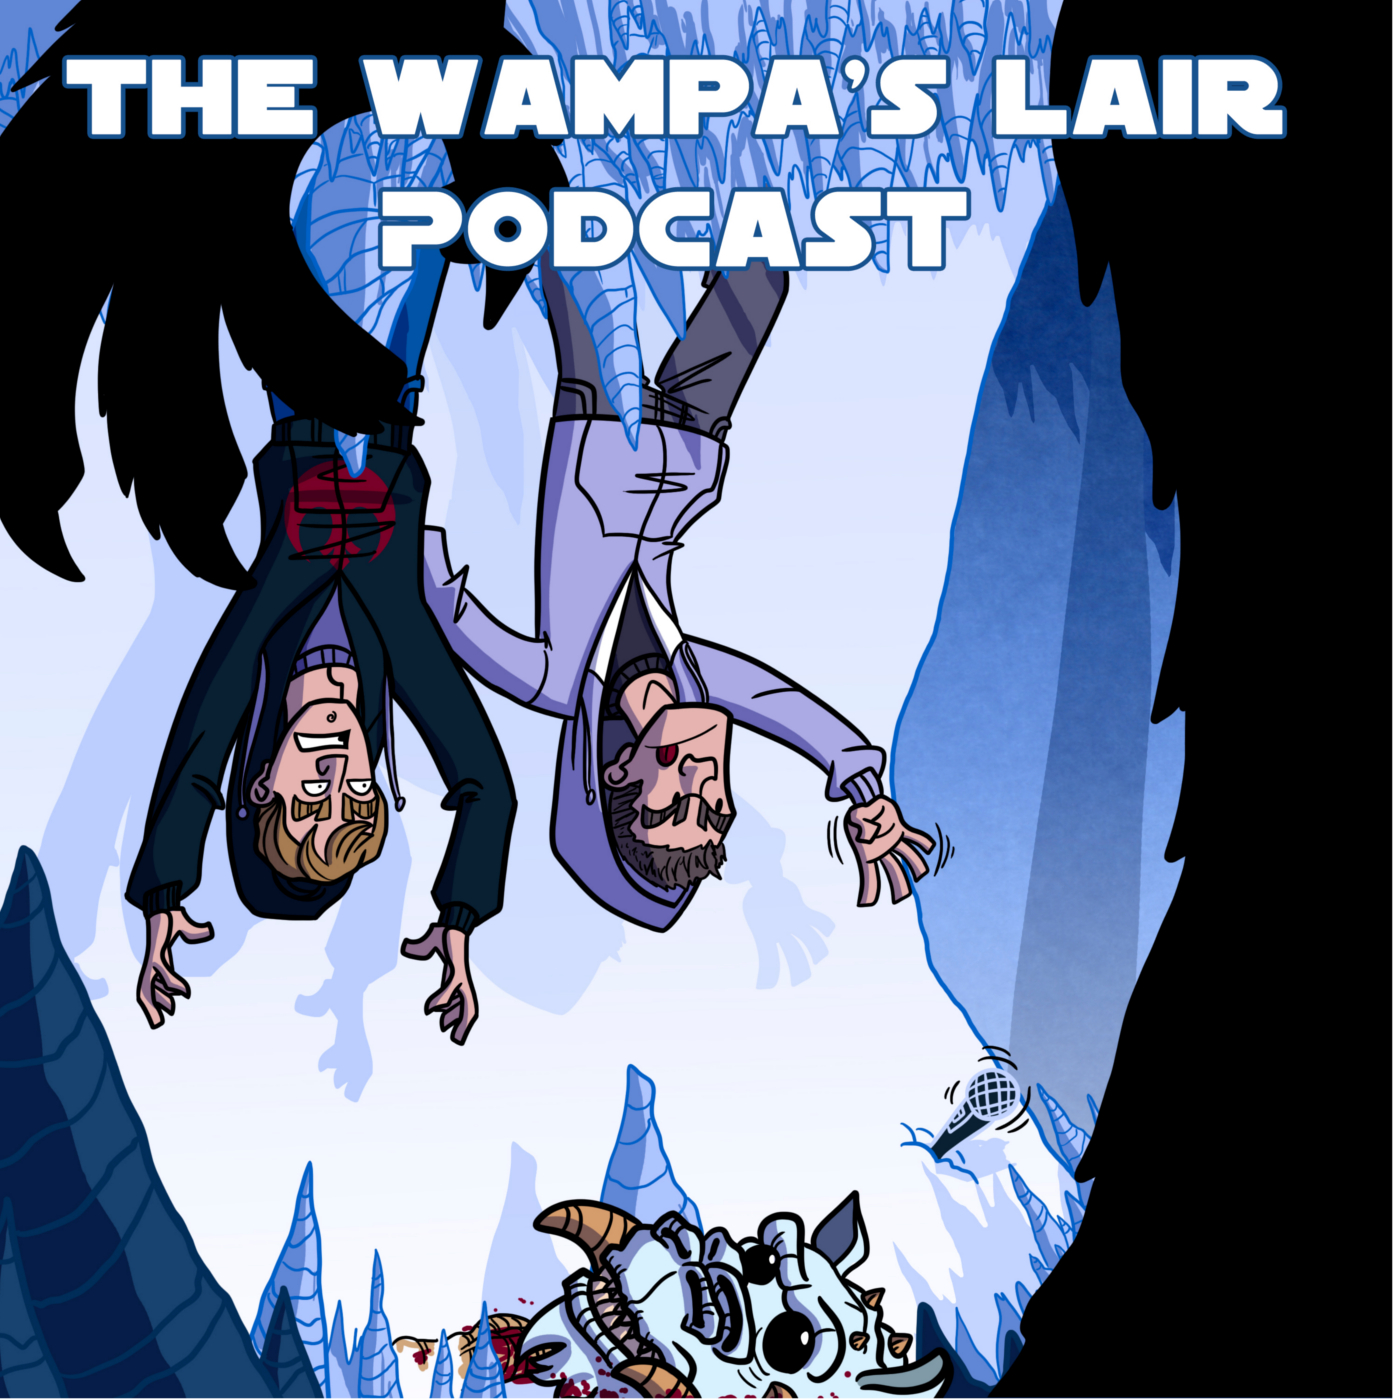 The Wampa's Lair (A Star Wars Podcast)